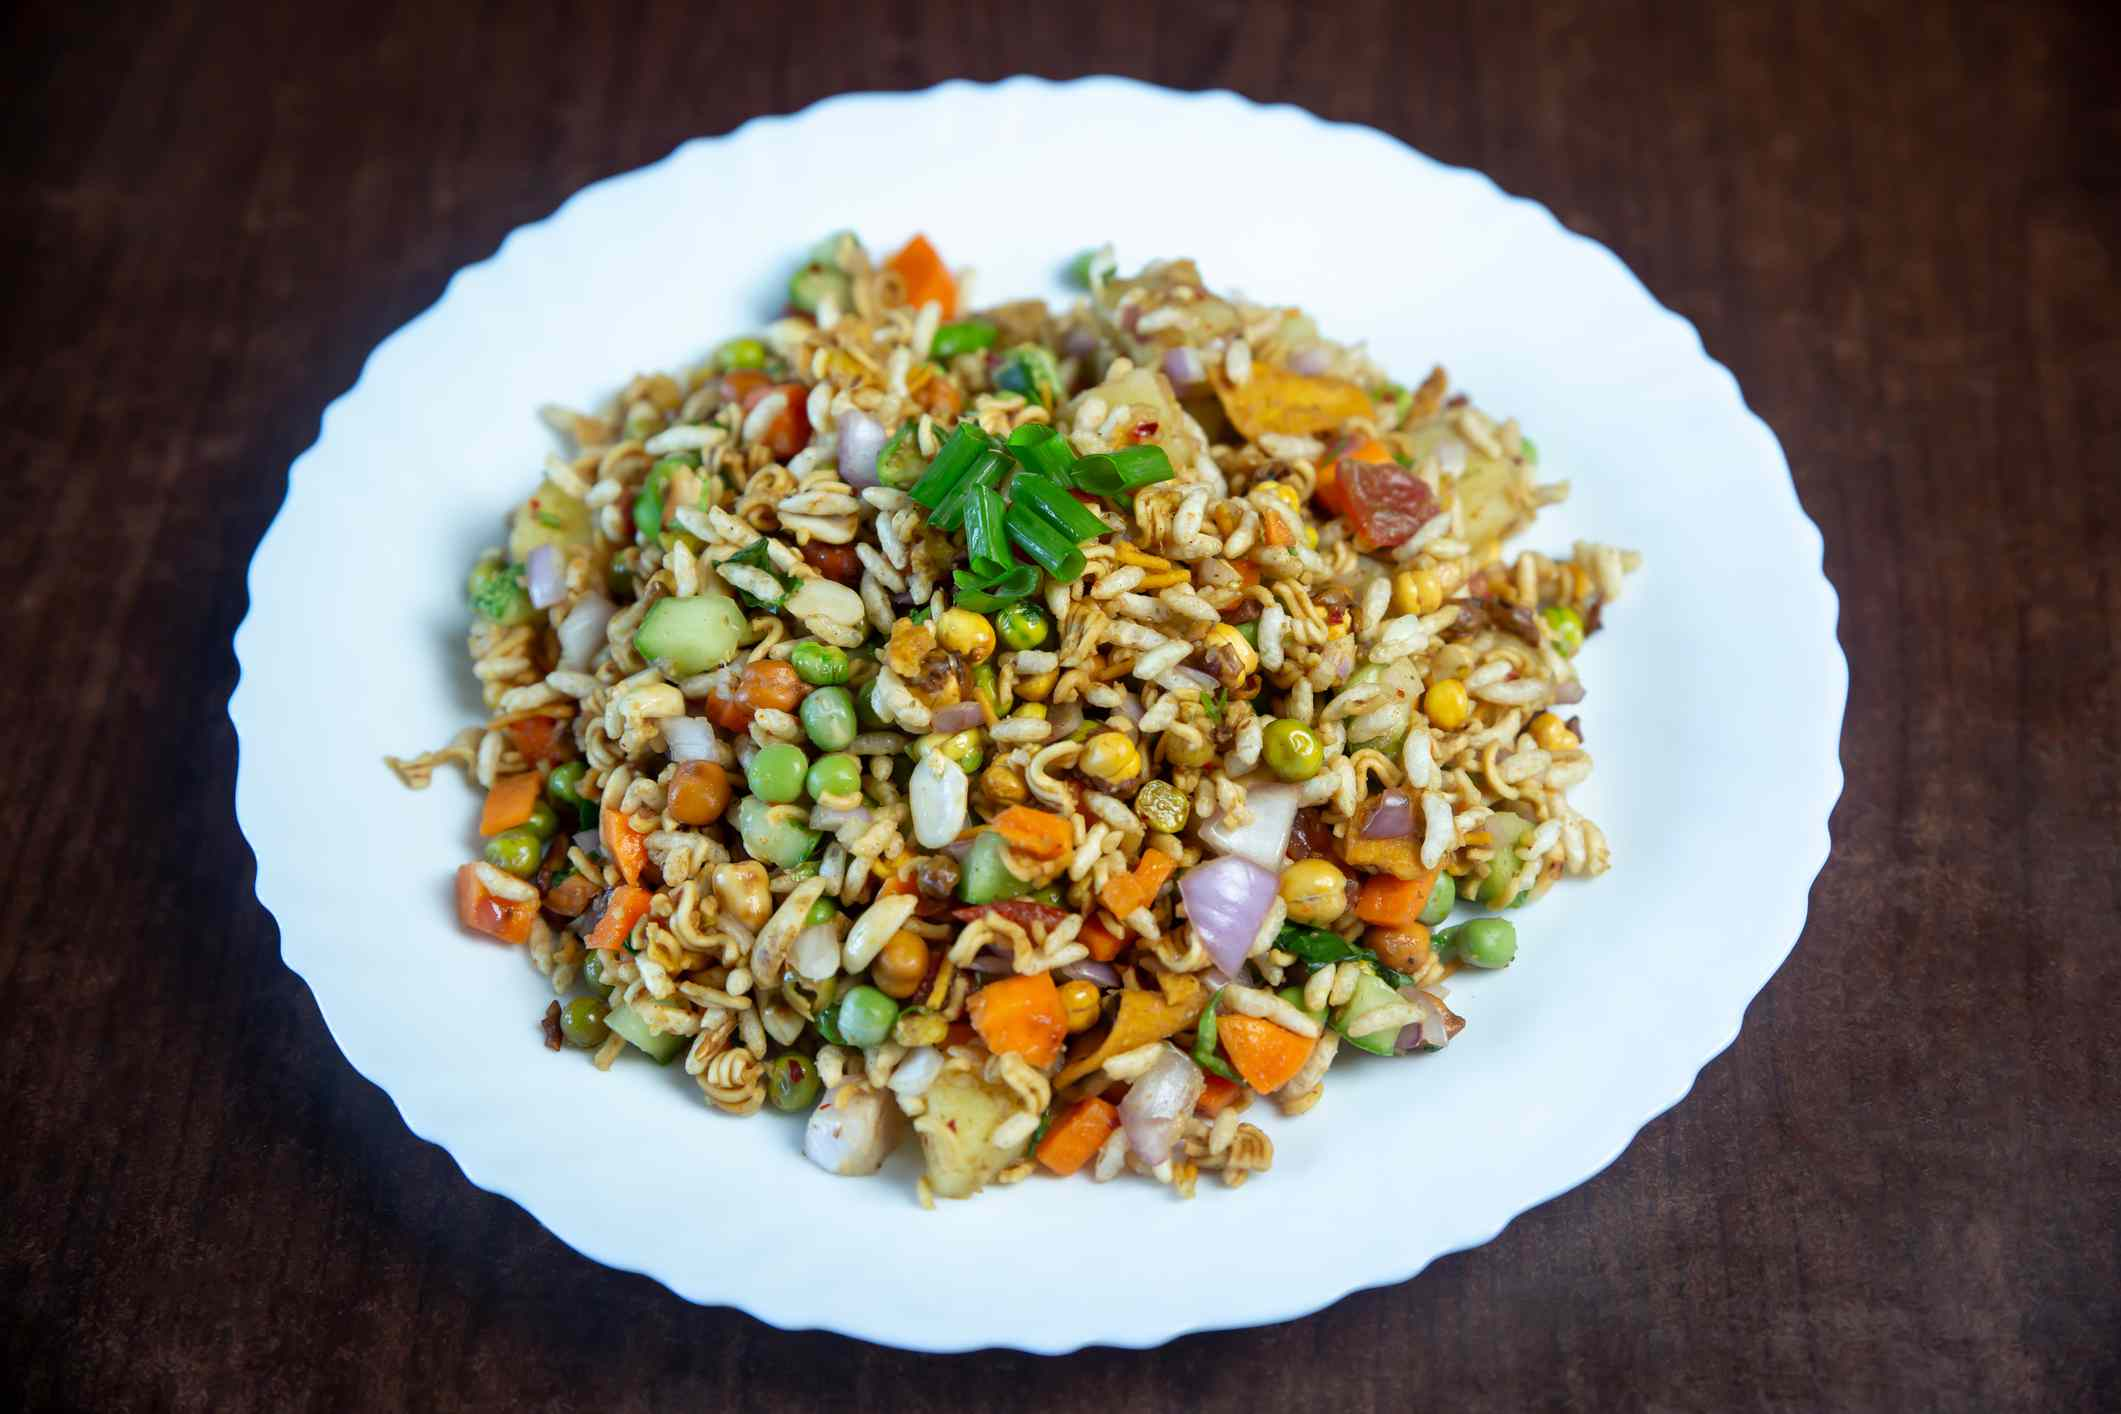 white plate on a table with a combination of chopped vegetables and pulses